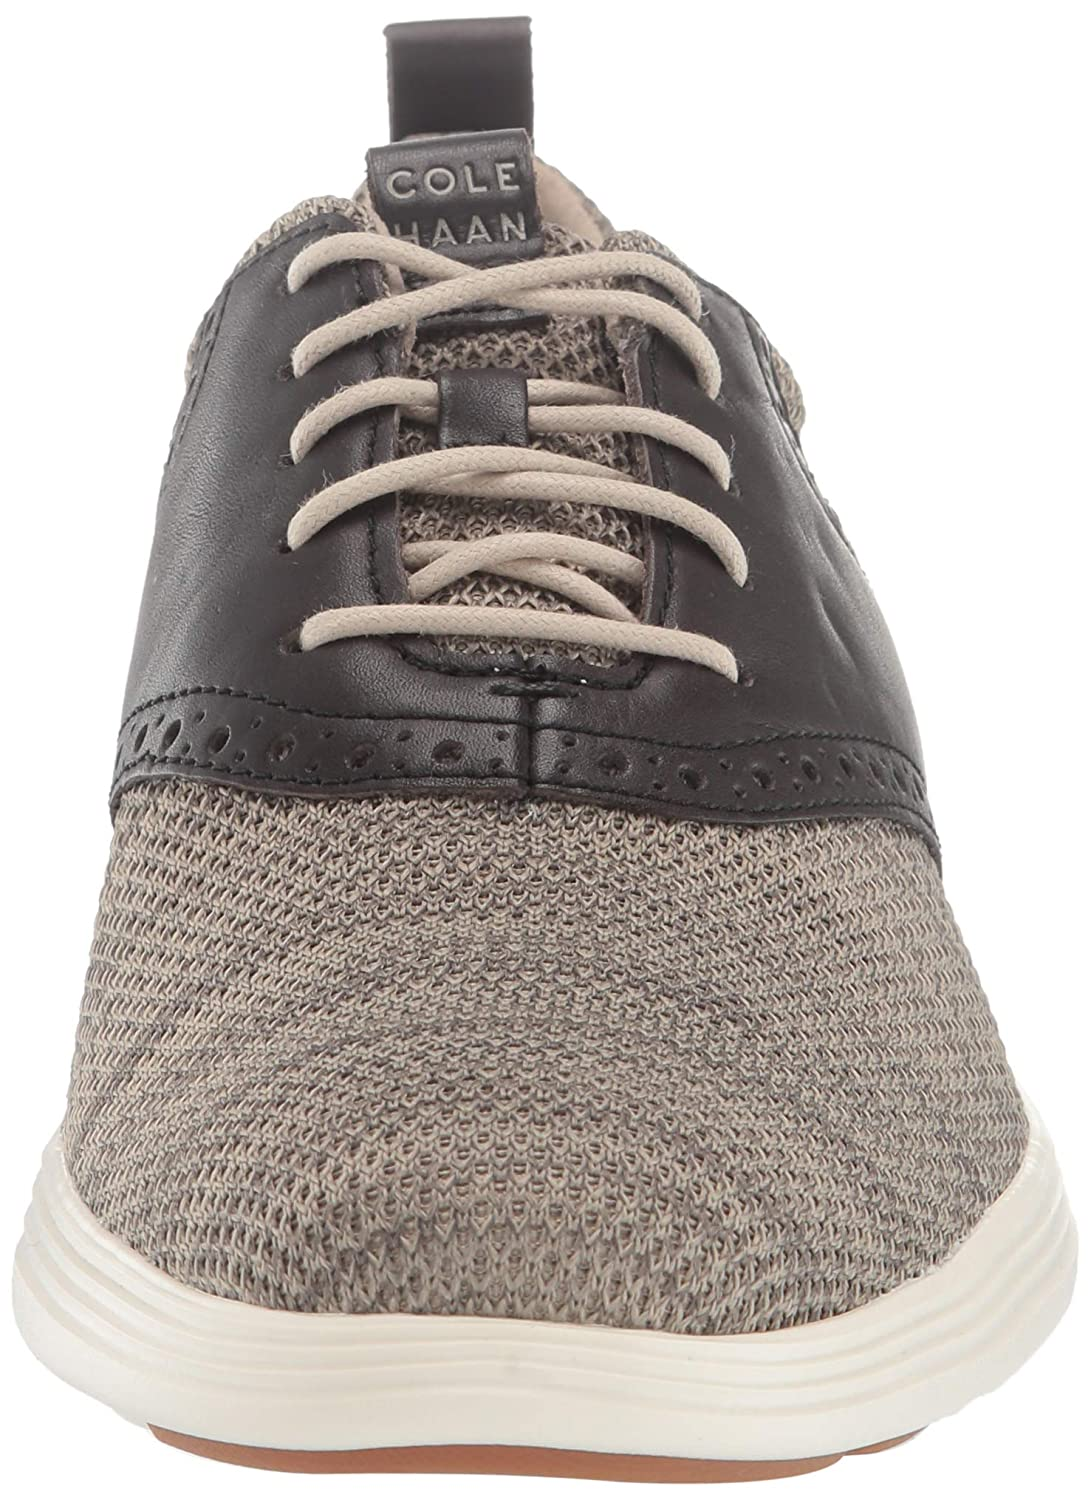 Cole Haan Mens Grand Tour Knit Oxford Black Flat